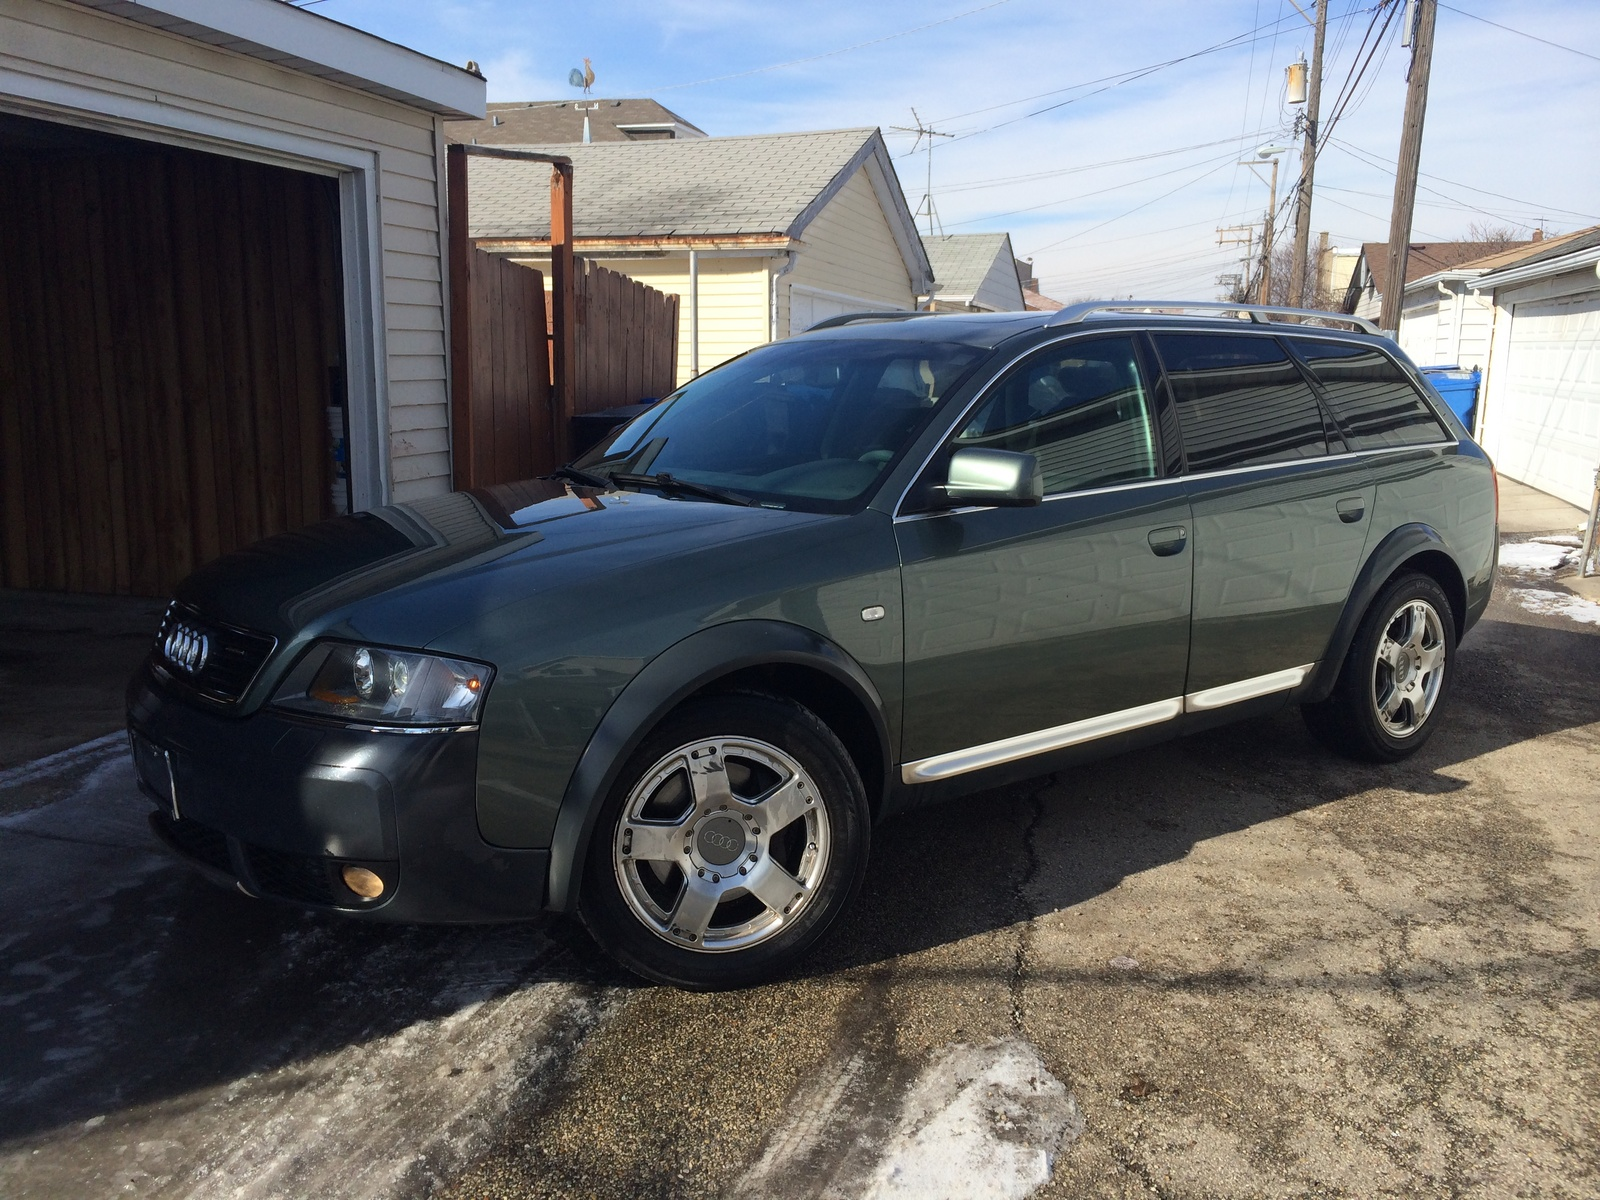 Picture of 2001 Audi Allroad Quattro 4 Dr Turbo AWD Wagon